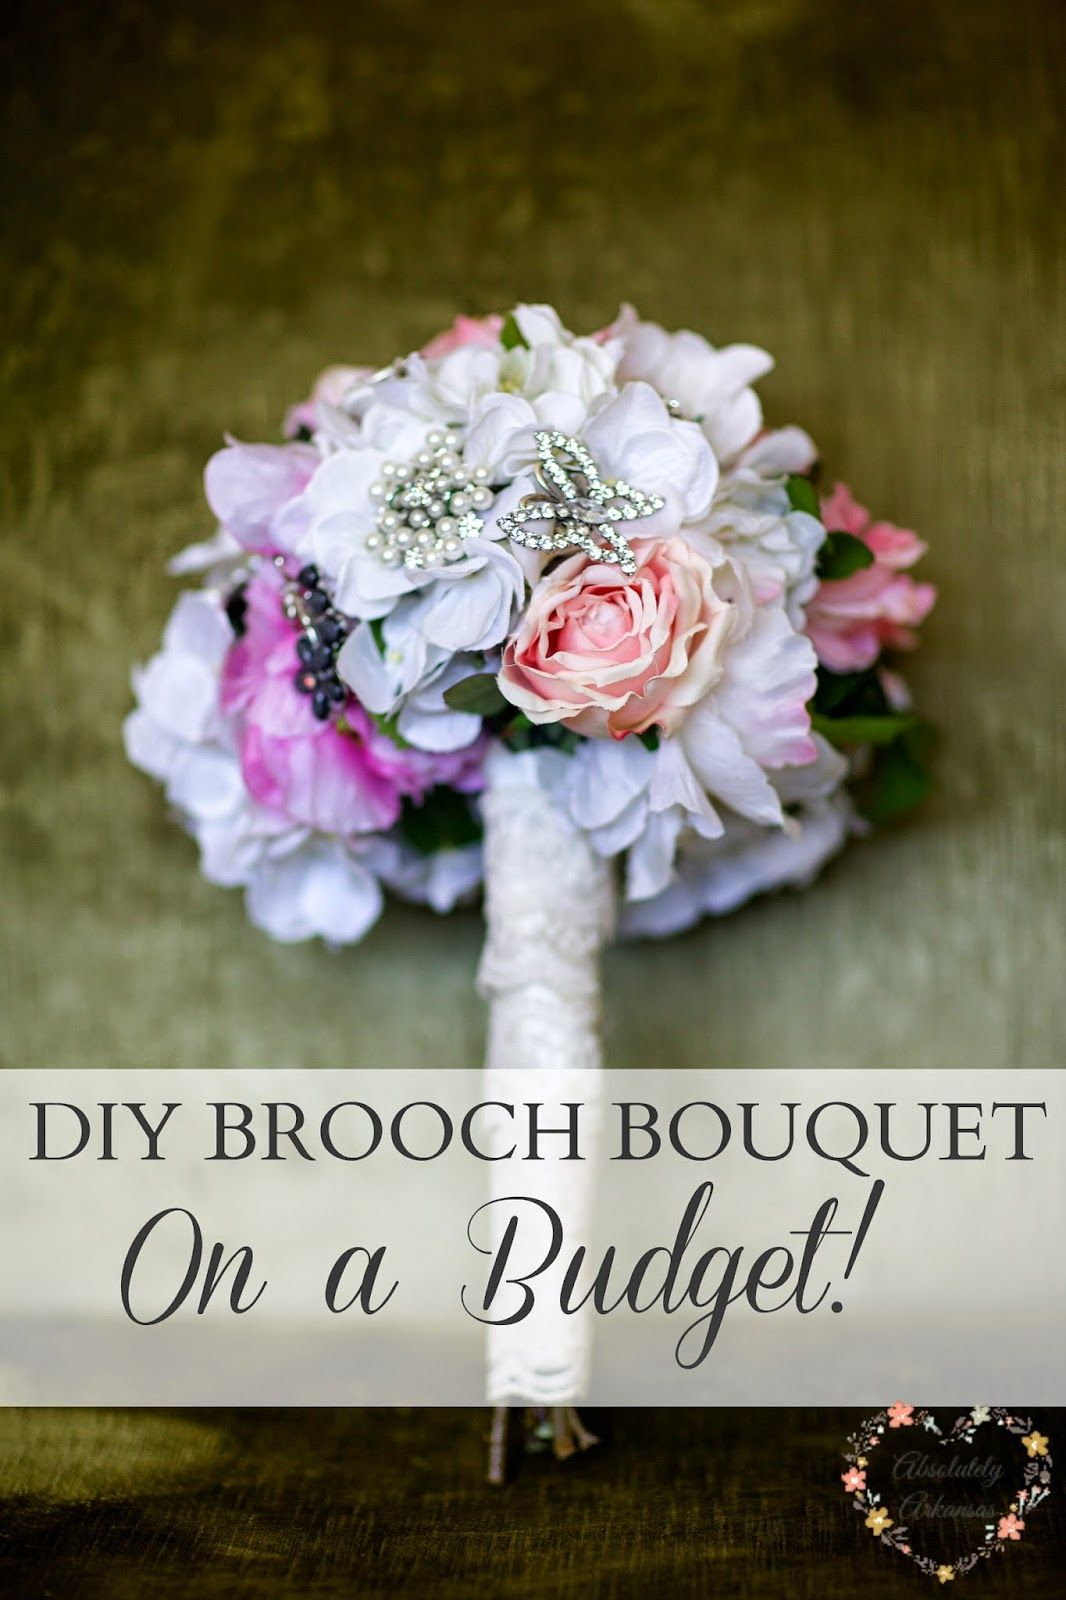 How to DIY a Brooch Bouquet for your weddingon a budget